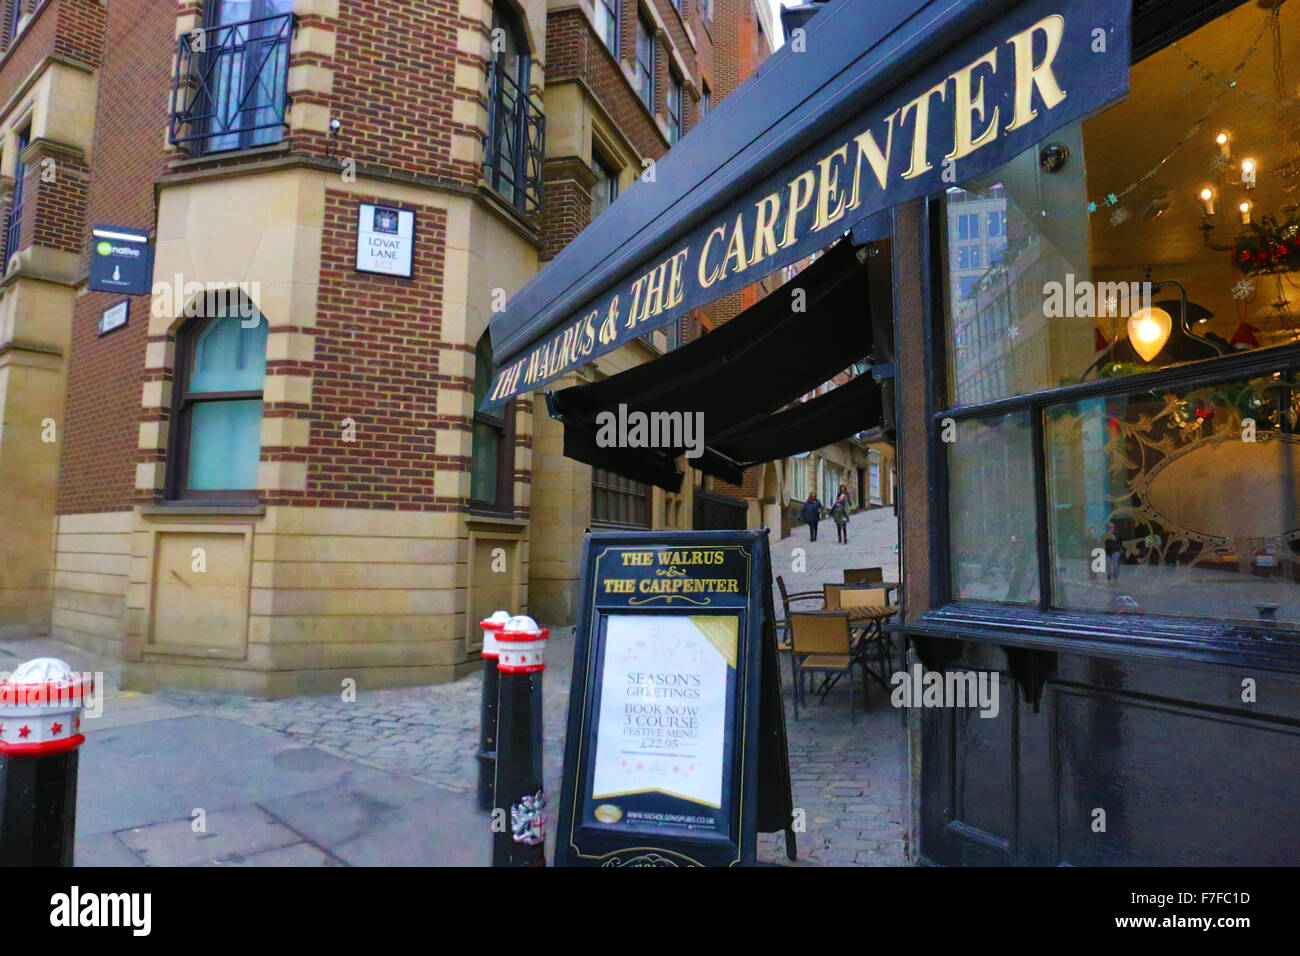 the walrus and the carpenter lovat lane ec3 stock photo royalty